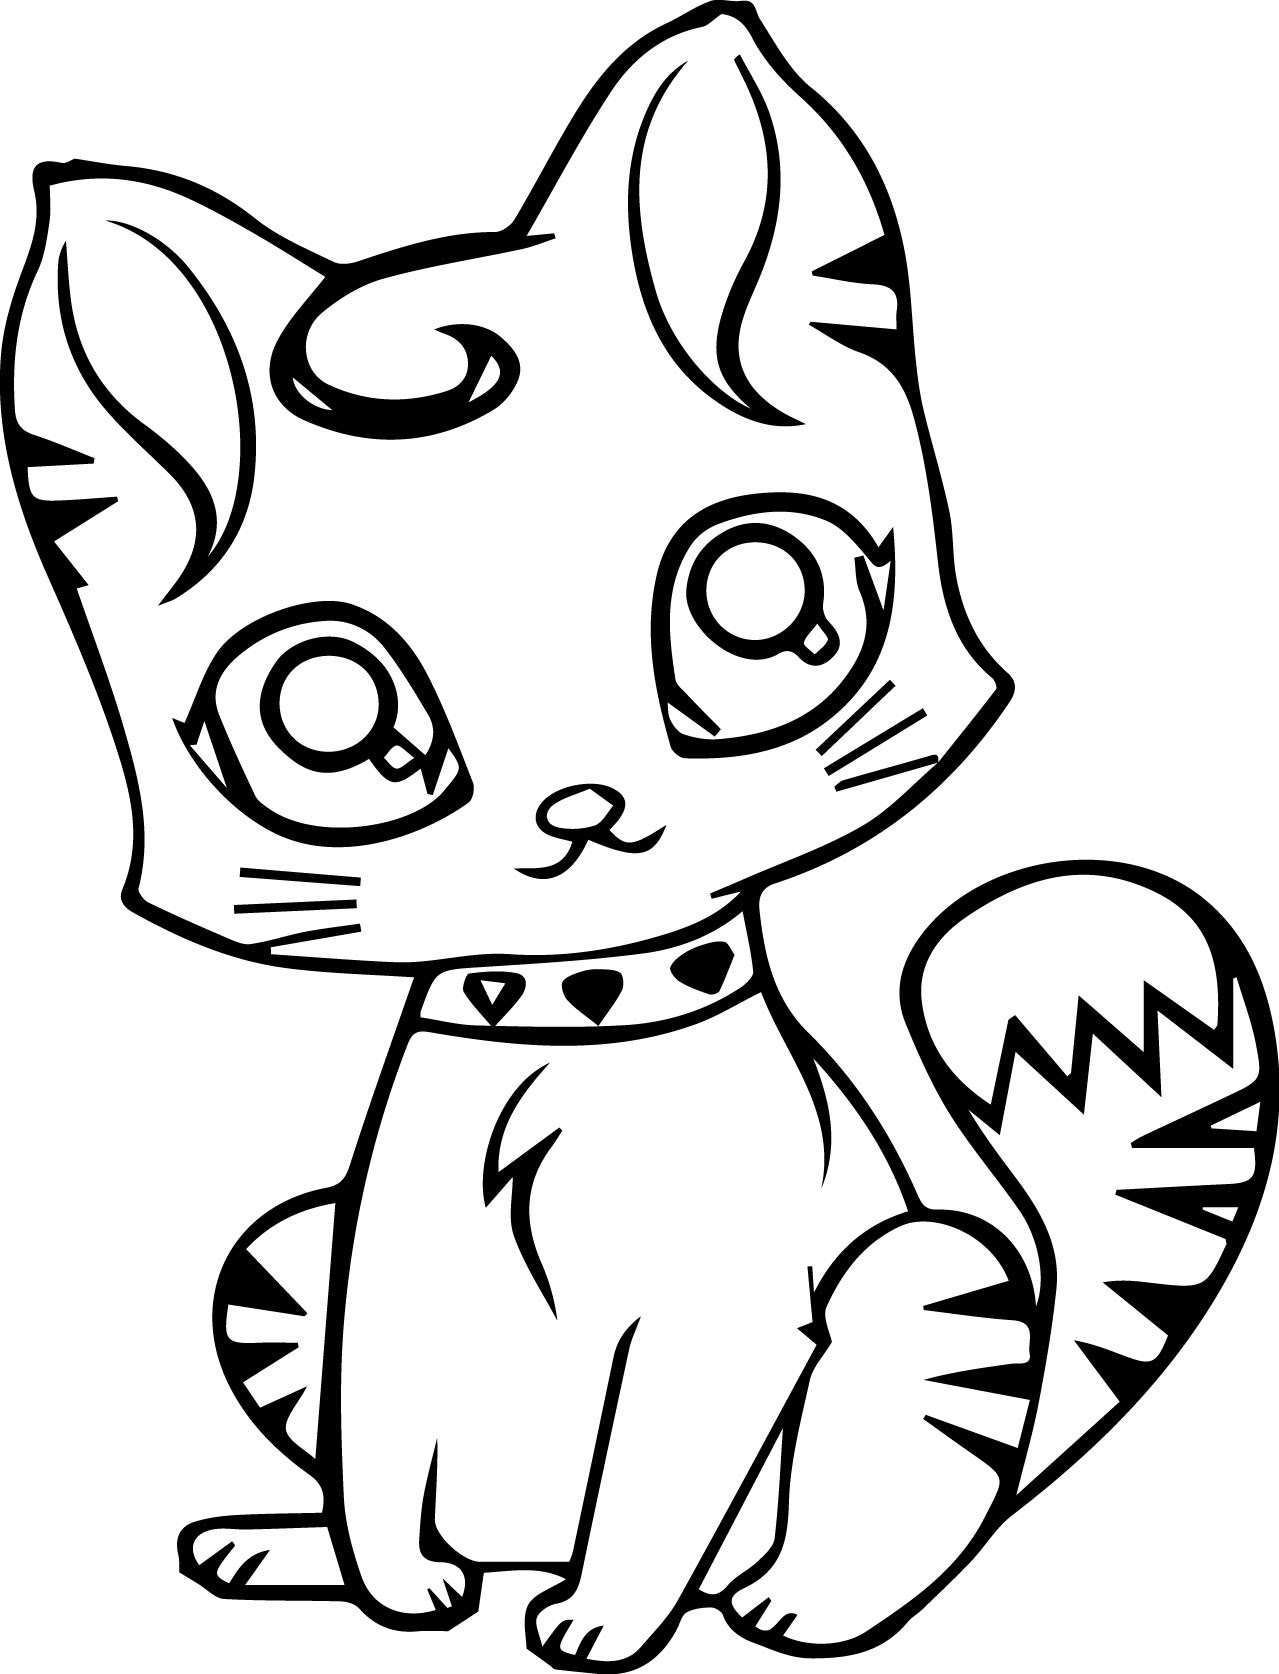 6500 Coloring Pages Of Cats For Preschoolers  Images